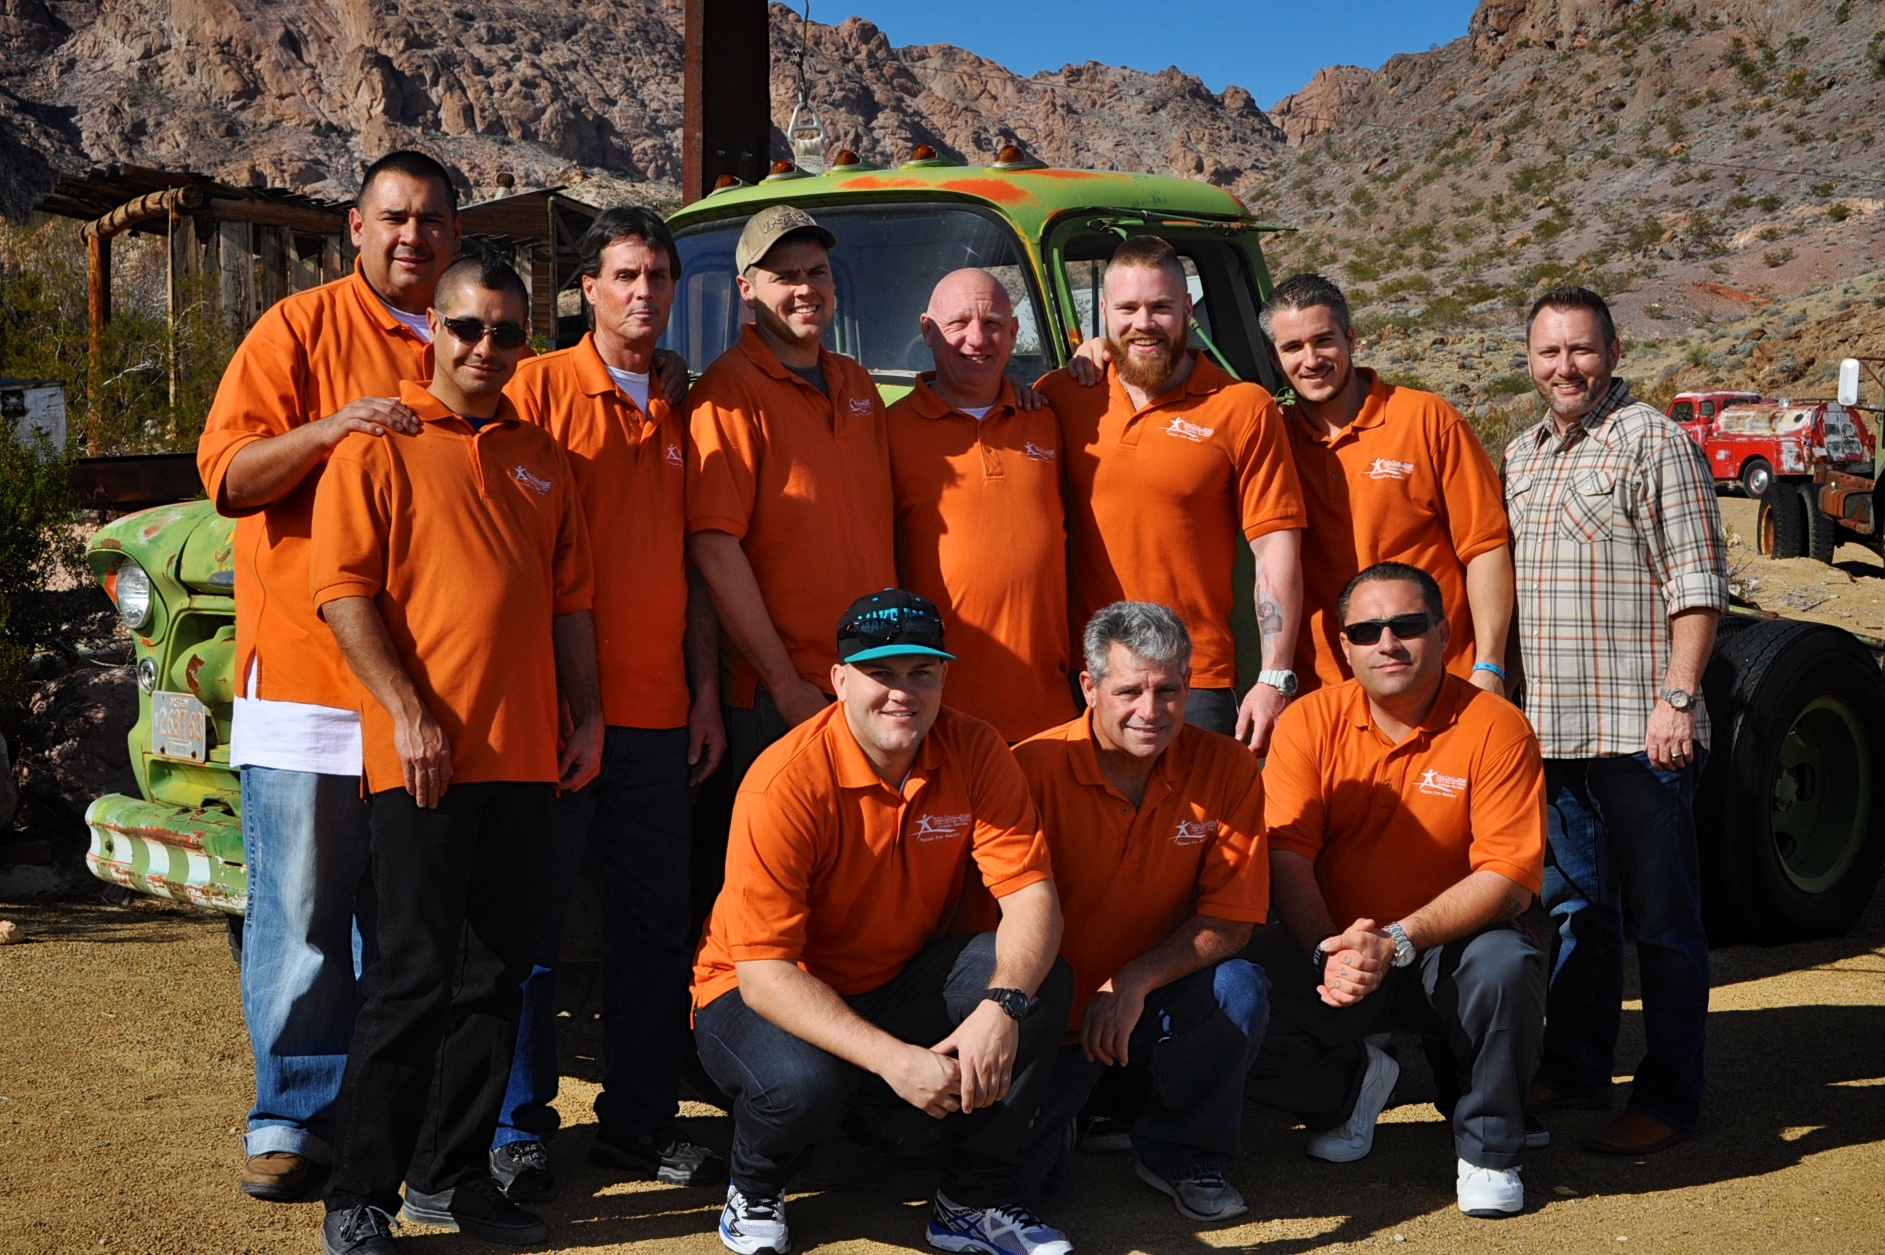 Students at the Teen Challenge NorWestCal Nevada Men's Center in Las Vegas, Nevada.